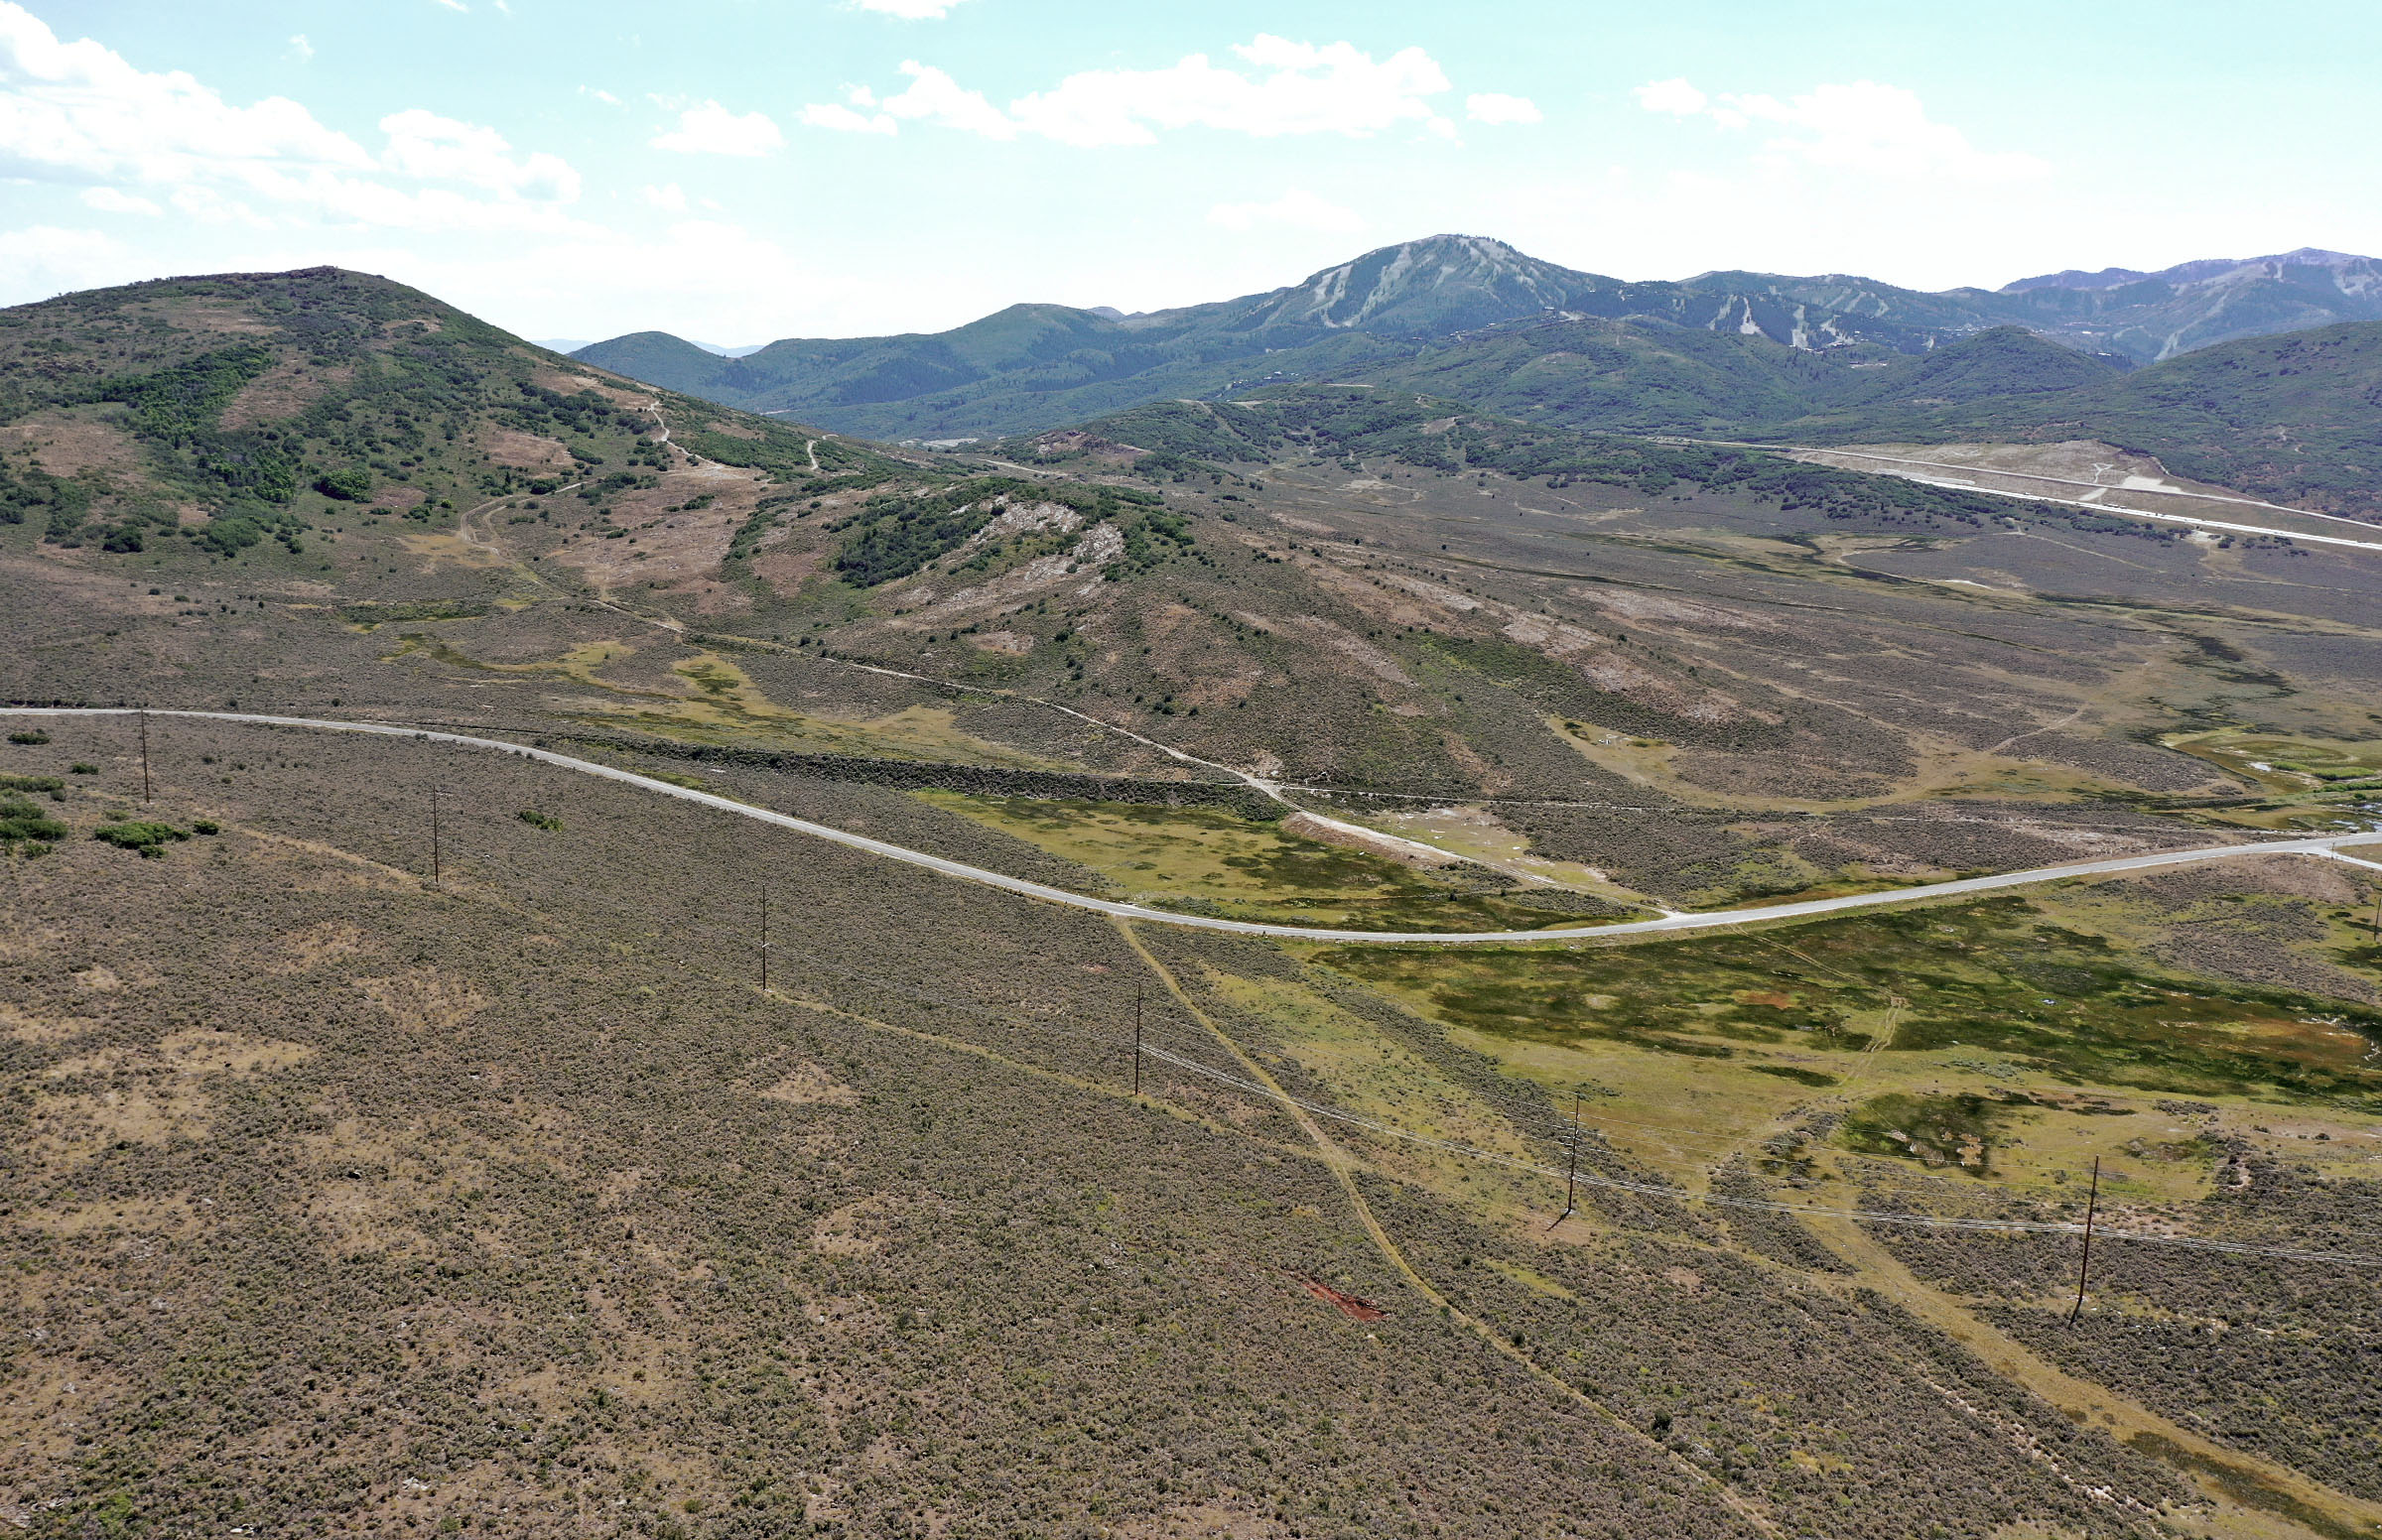 The town of Hideout wants to annex hundreds of acres from Summit County and Wasatch County, including the land pictured in Summit County on Monday, July 20, 2020.